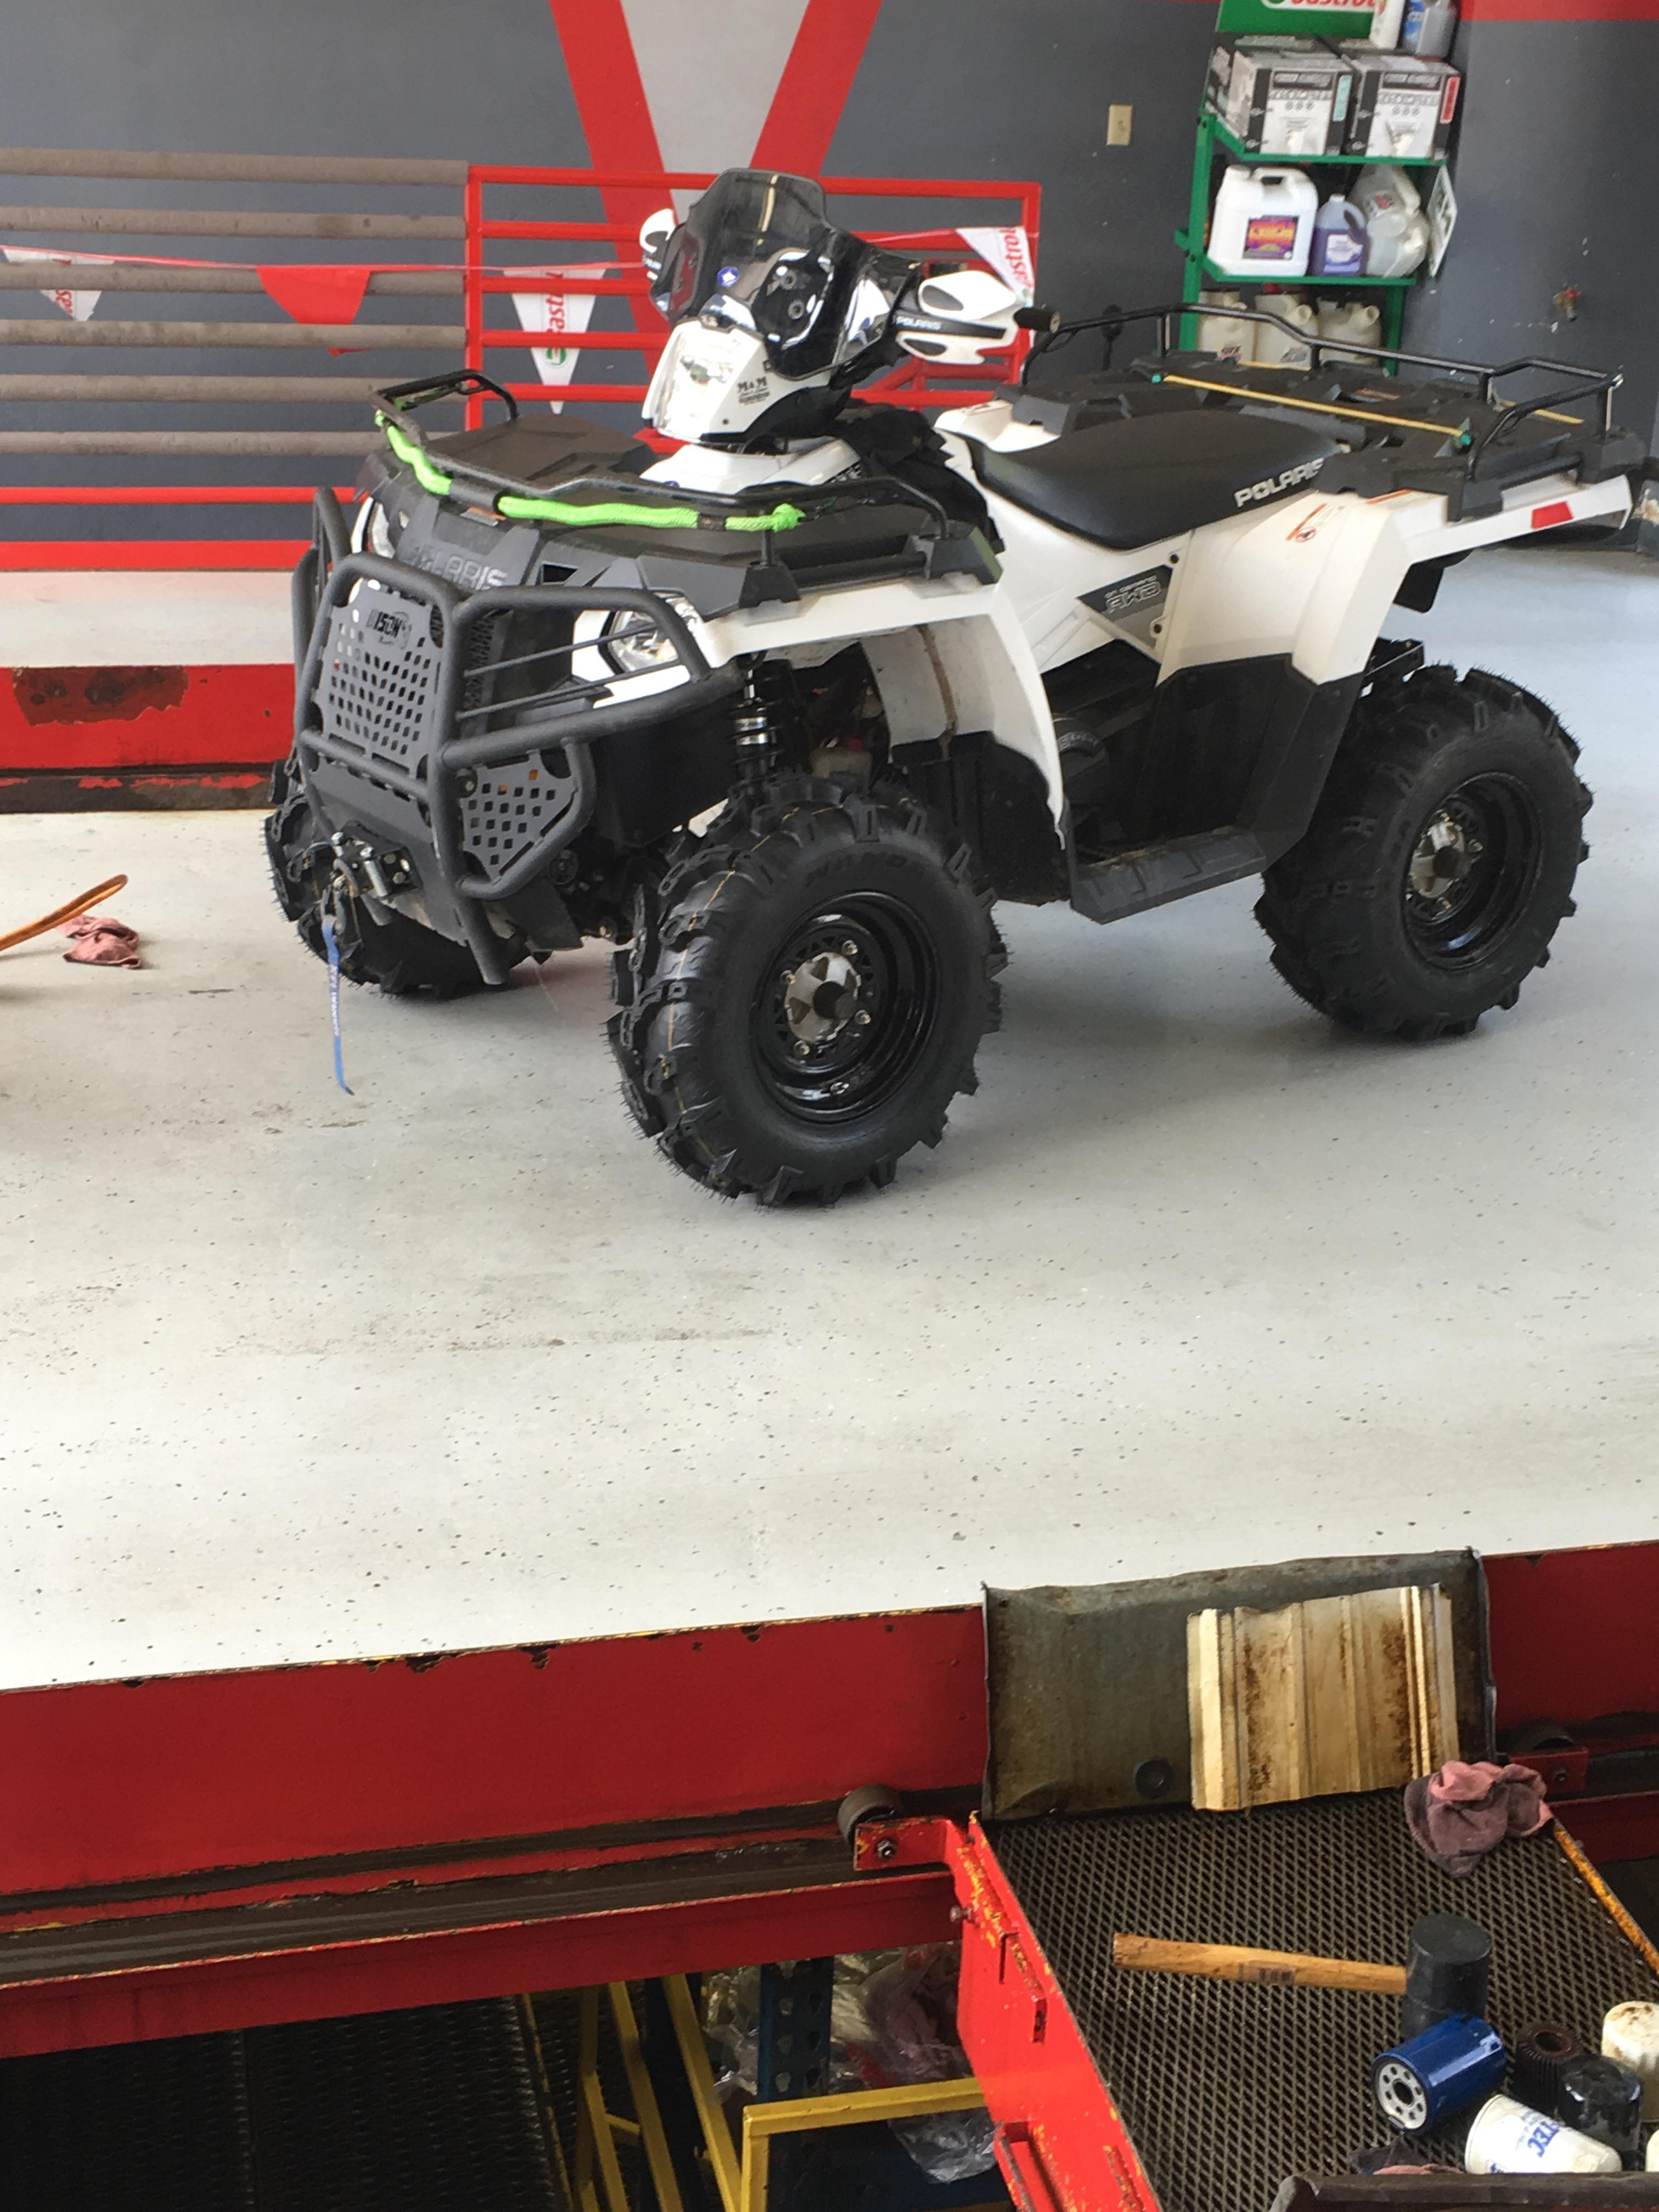 Submit your ATV - August - Polaris ATV of the Month Contest!-image_1470274448984.jpeg